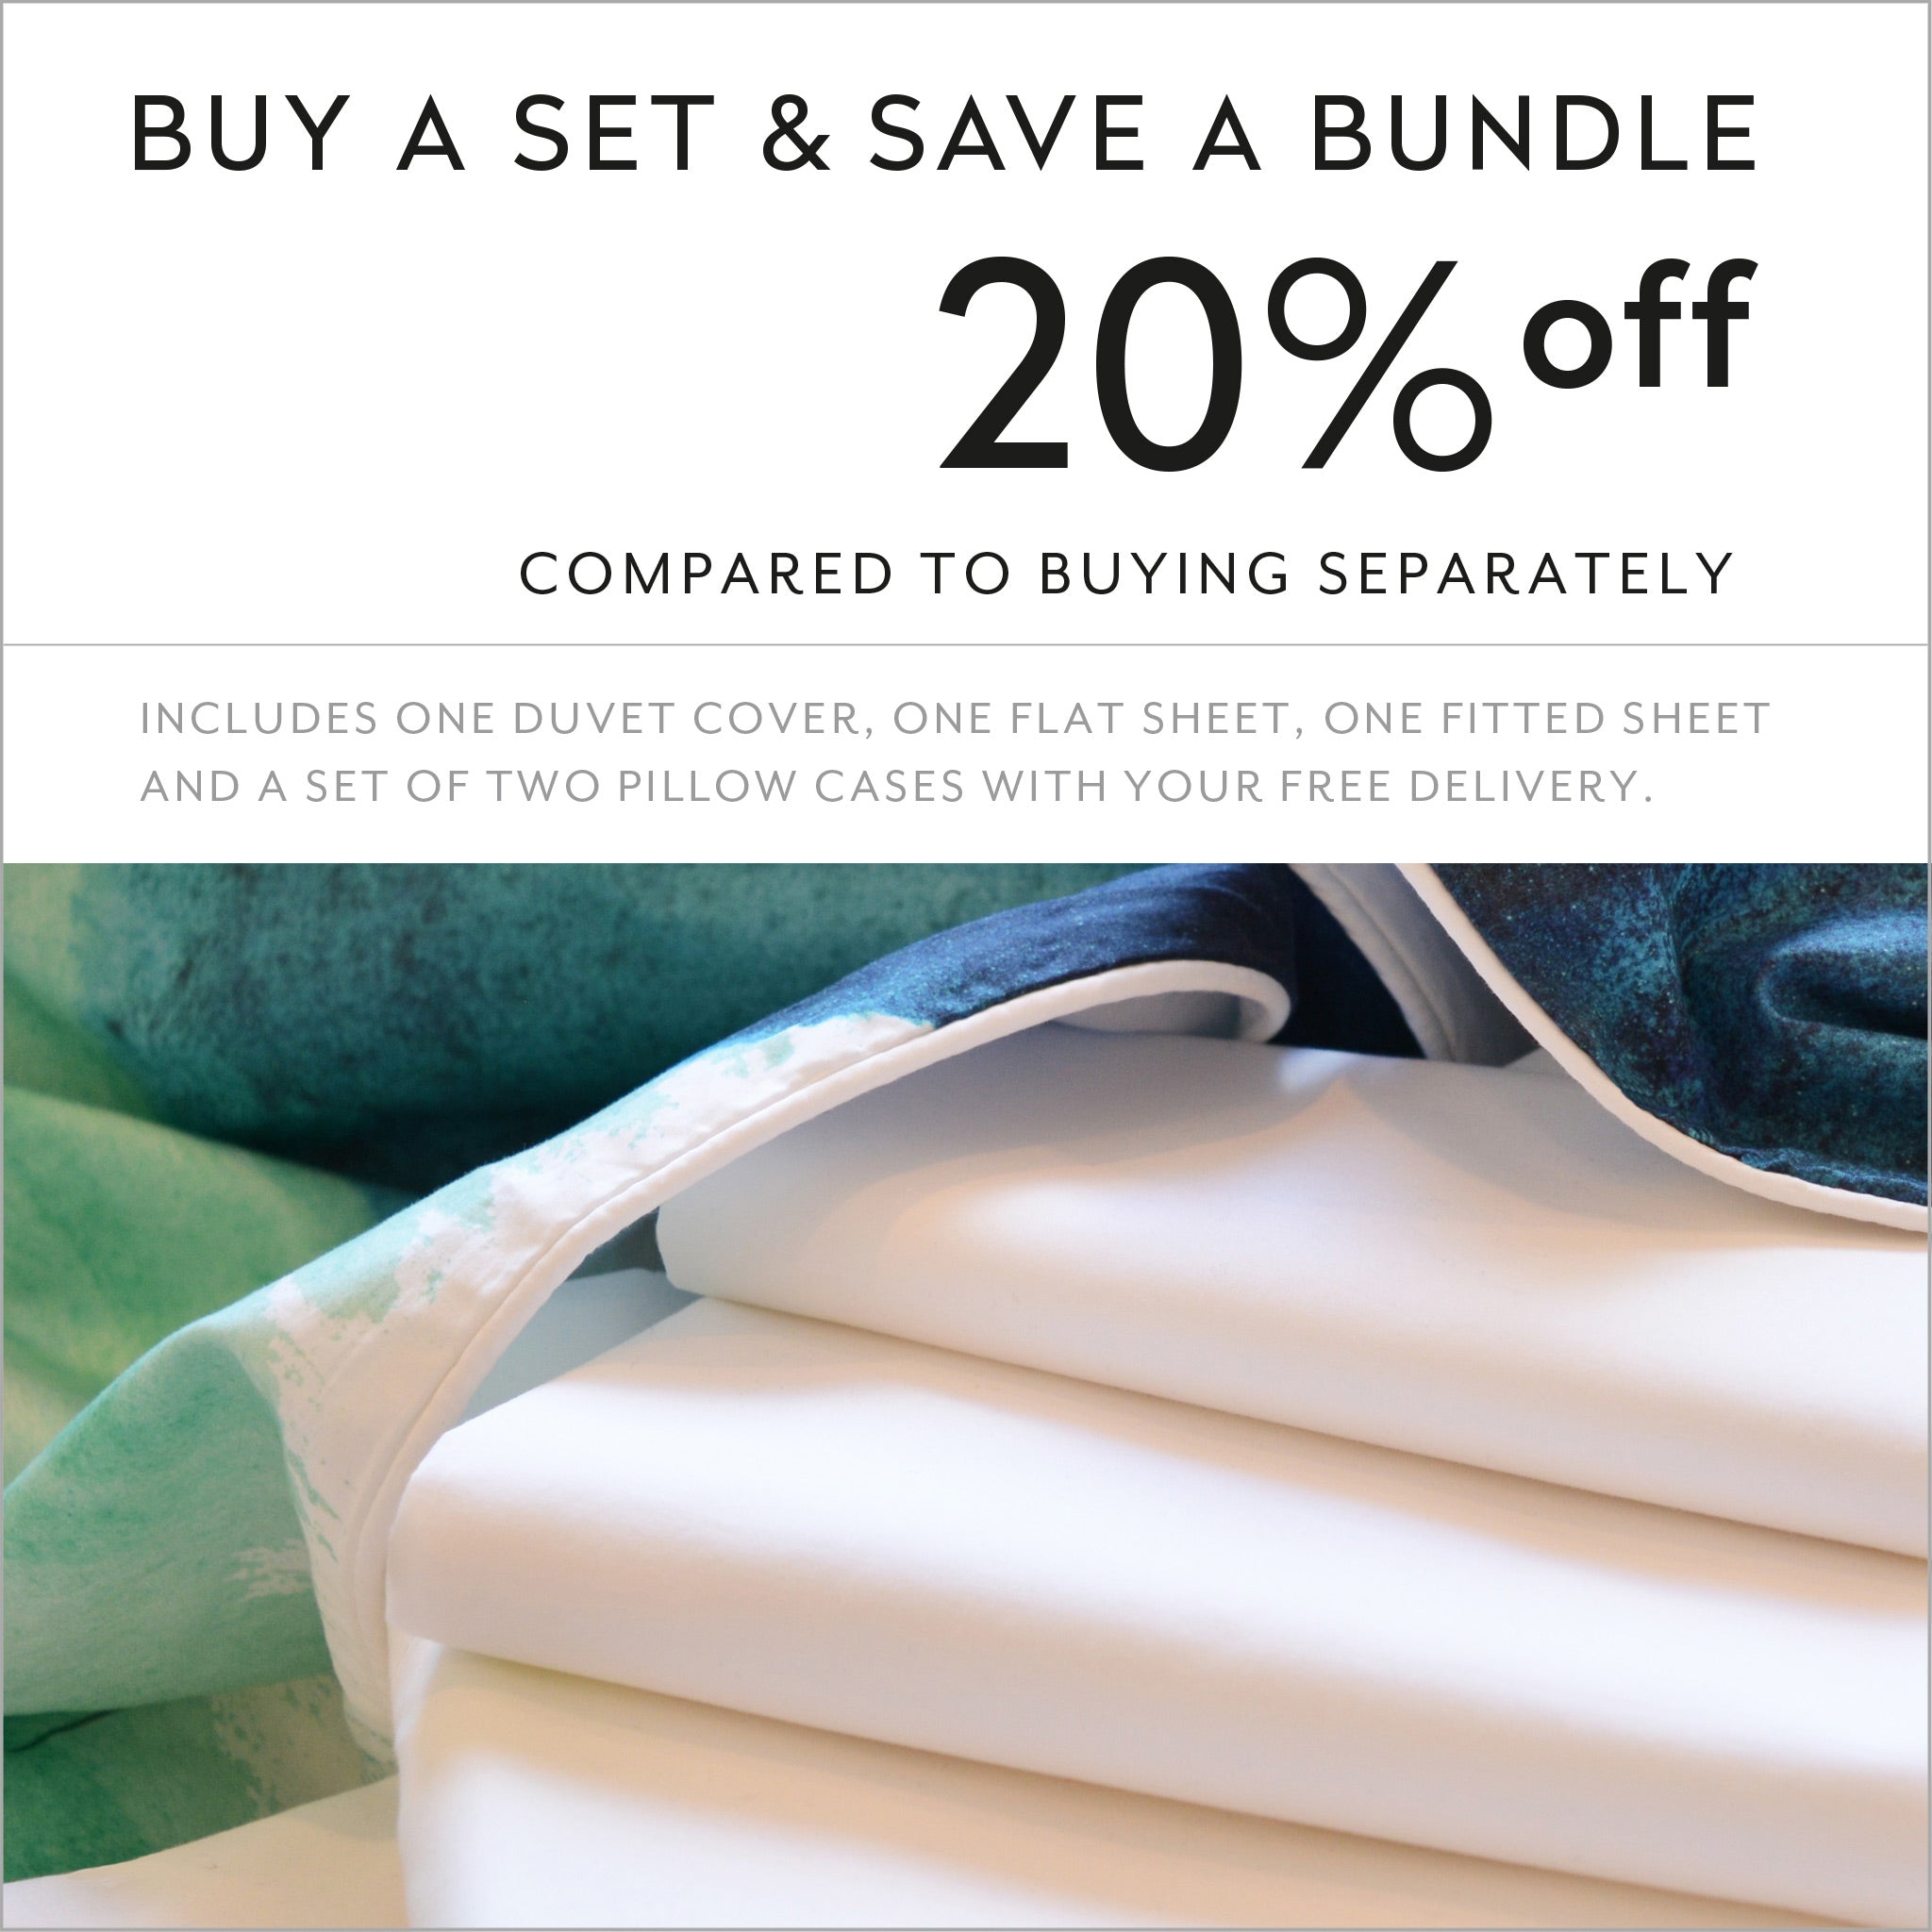 ZayZay luxury linen set save 20 percent off Blueberry Bisque designer duvet cover sheets pillowcase